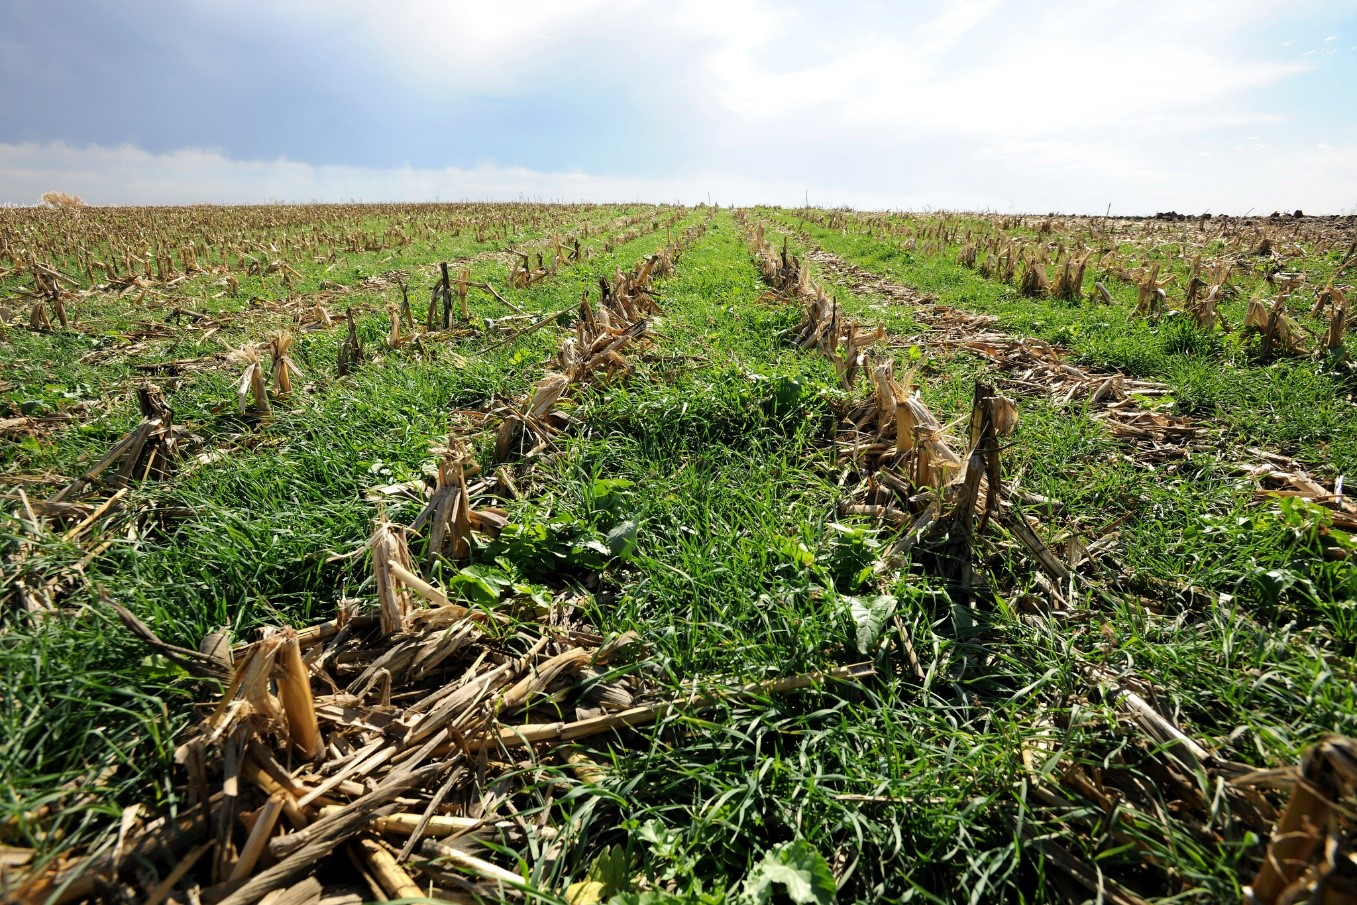 Cover crops can be used to reduce soil erosion, improve nutrient cycling, build soil organic matter, and improve the soil's ability to take in water.